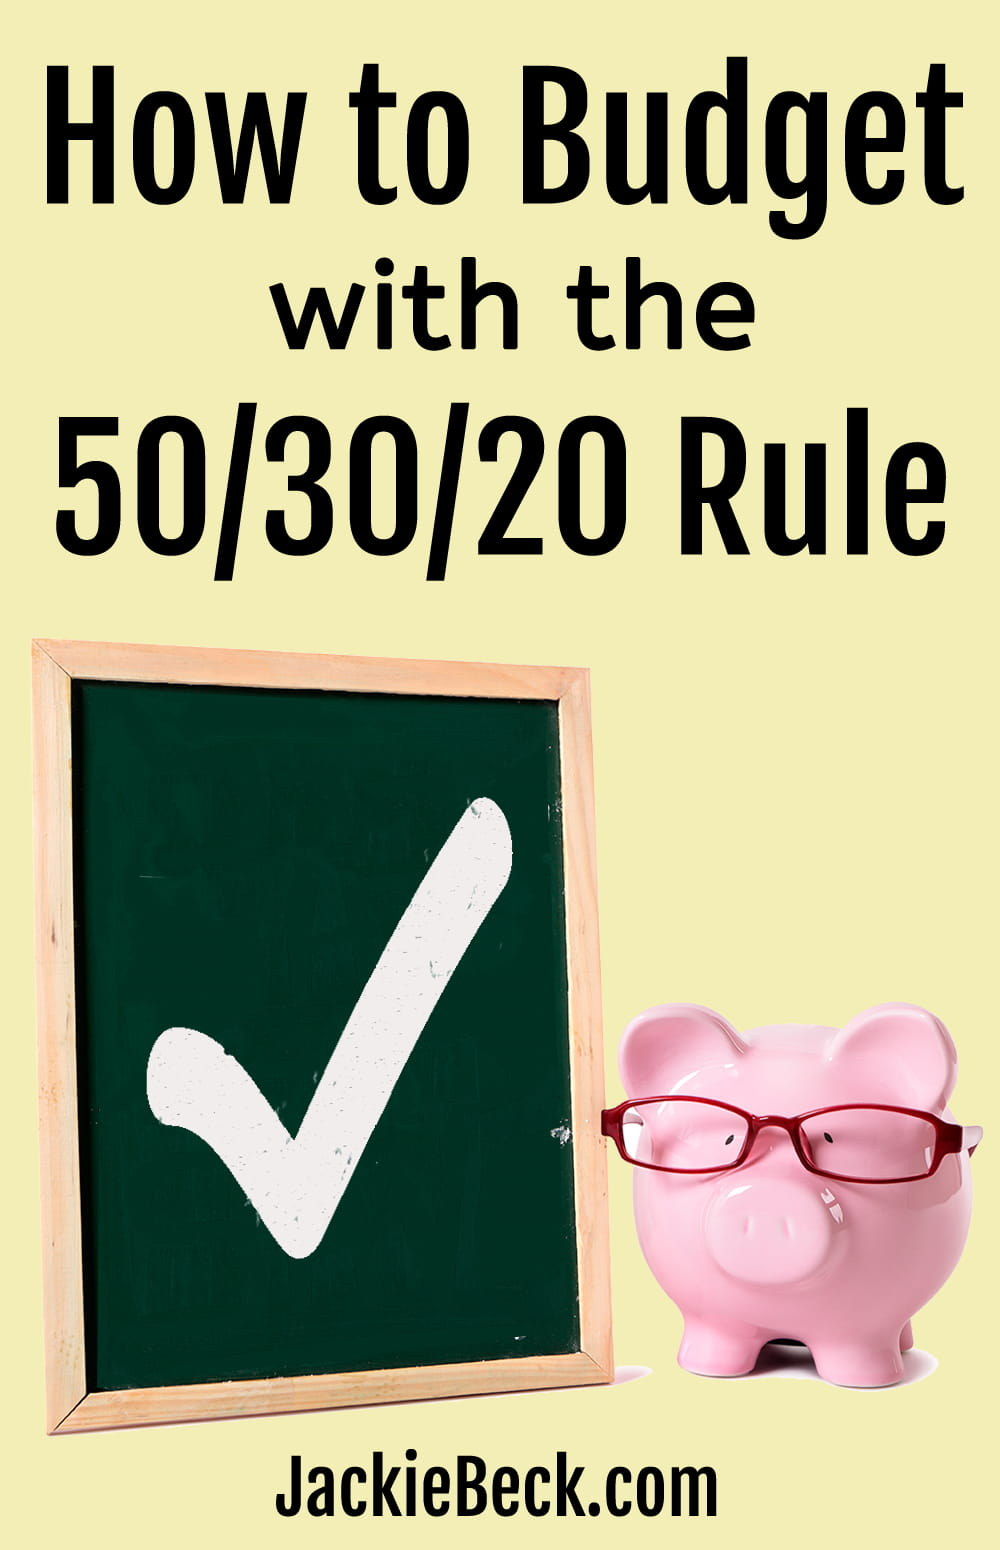 How to budget with the 50/30/20 rule